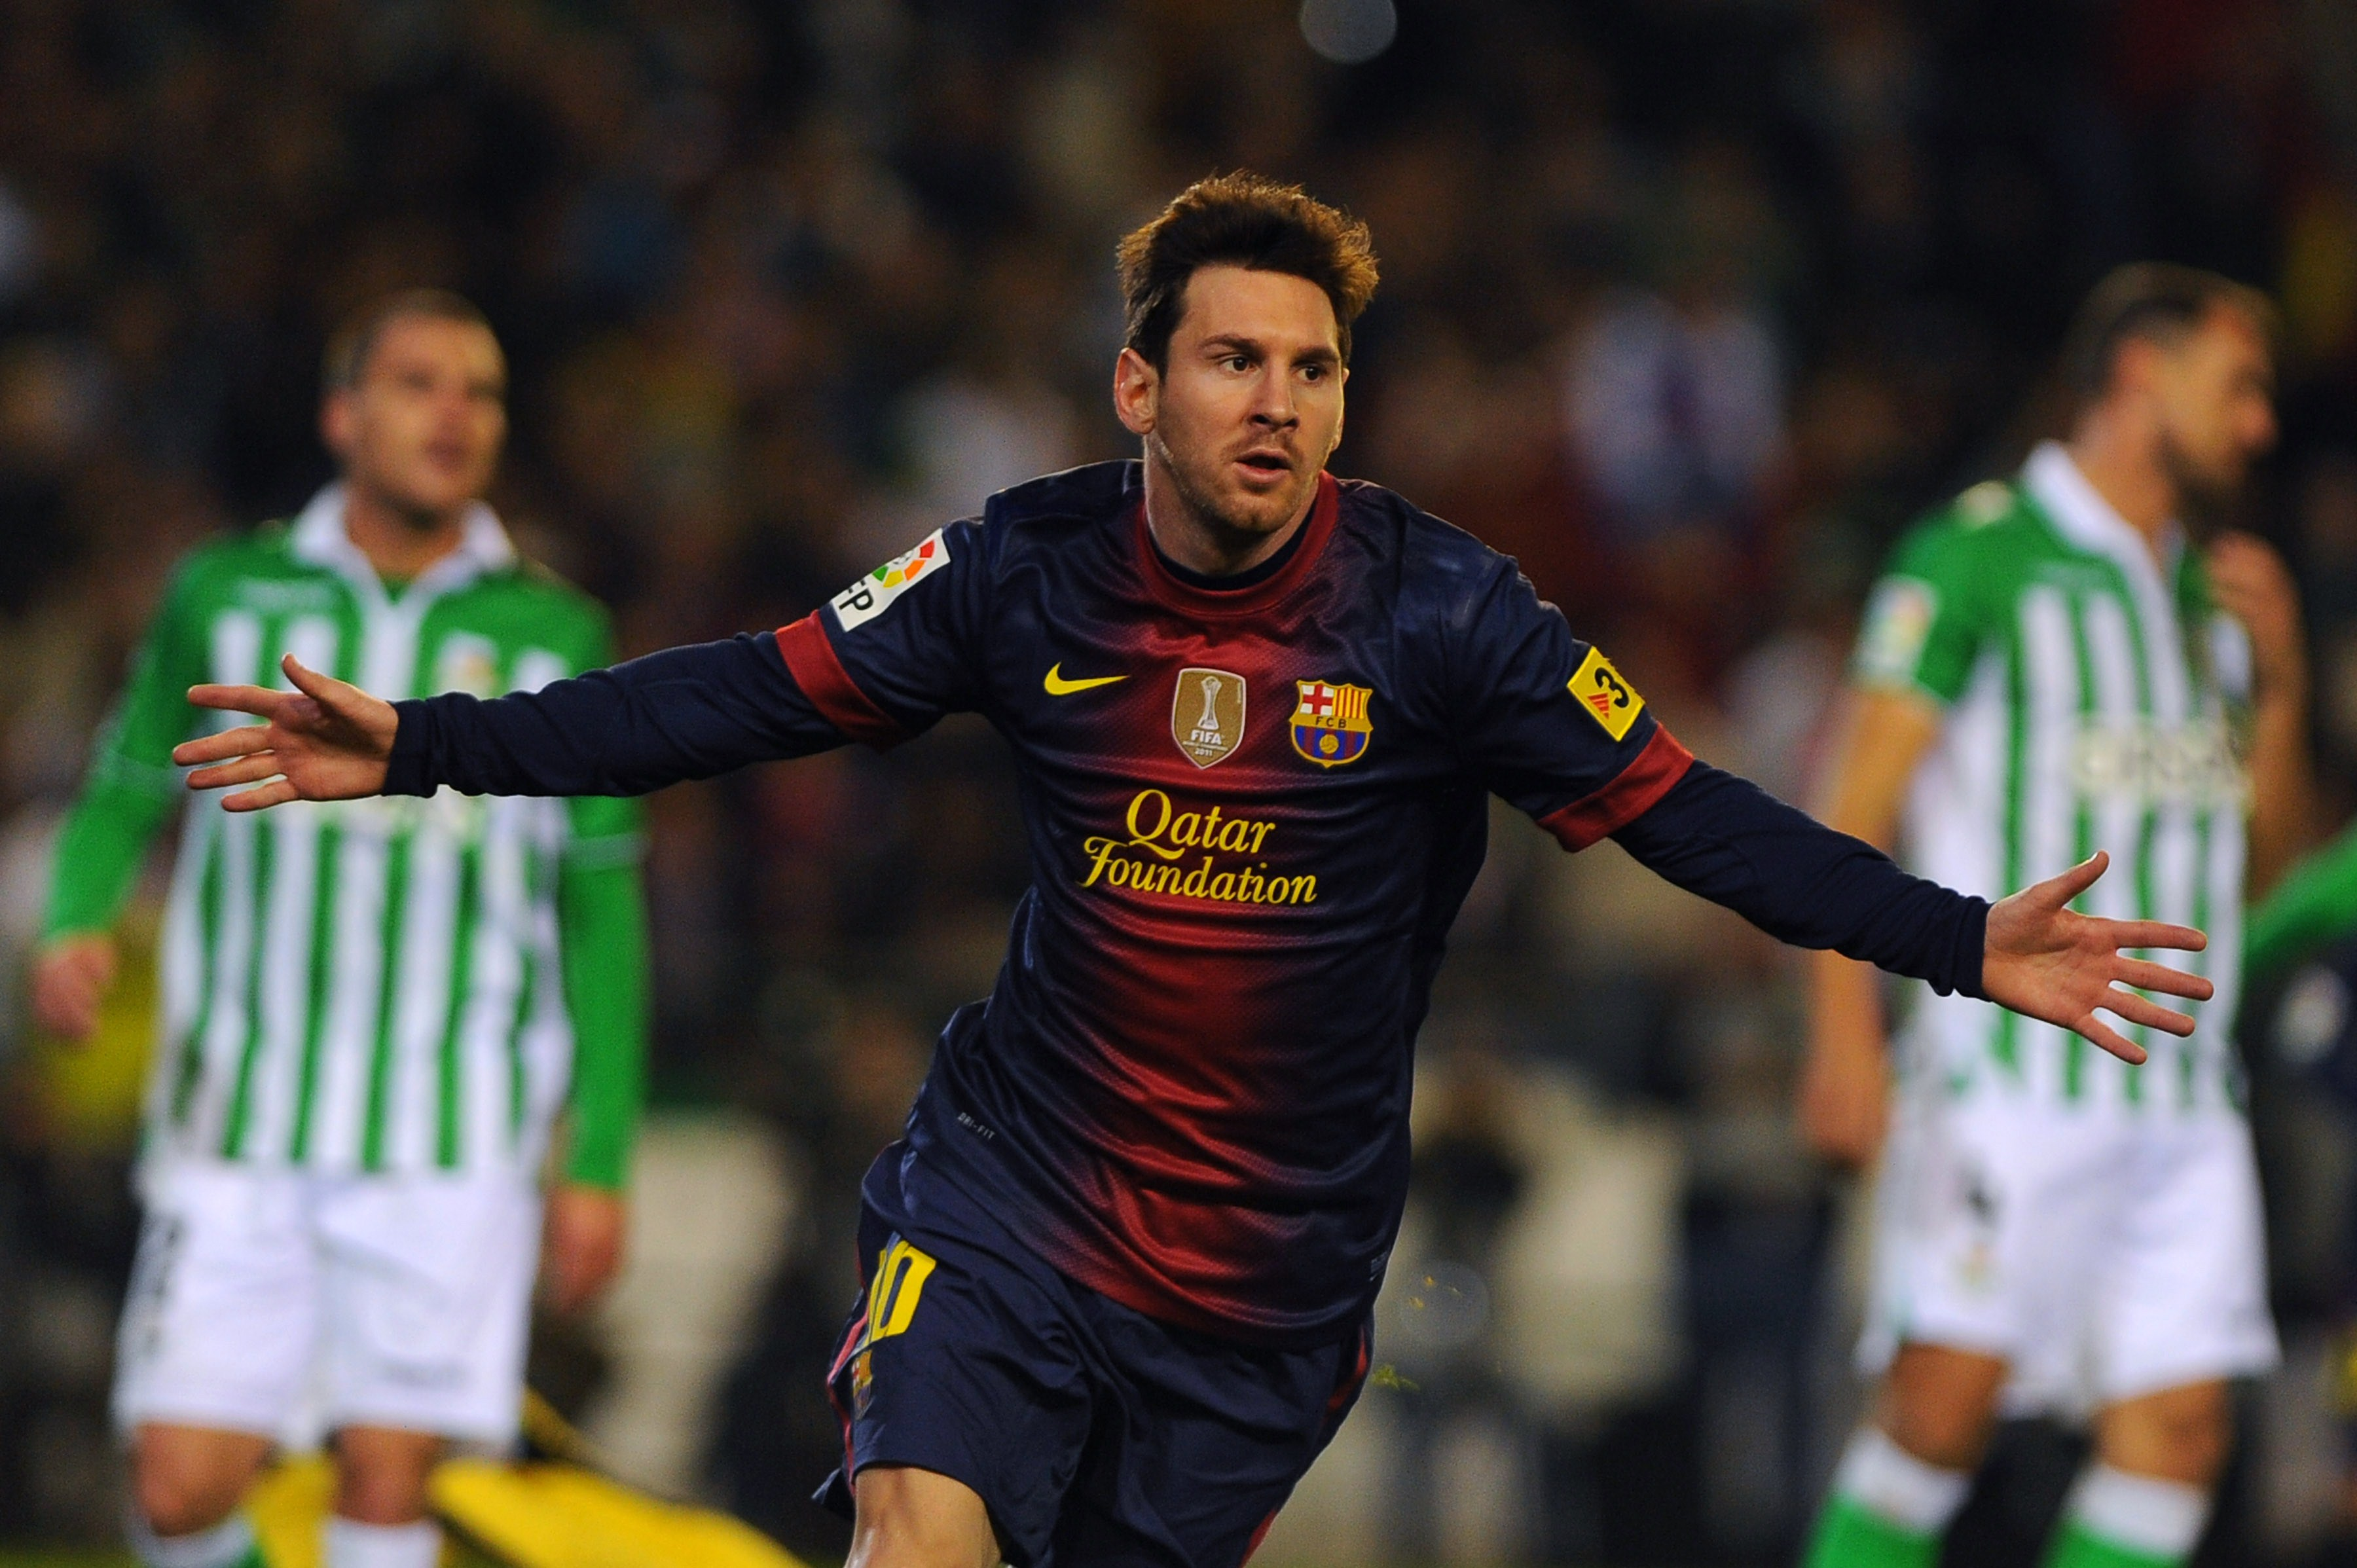 Lionel Messi has scored 86 goals for club and country so far in 2012 (Picture: AFP)